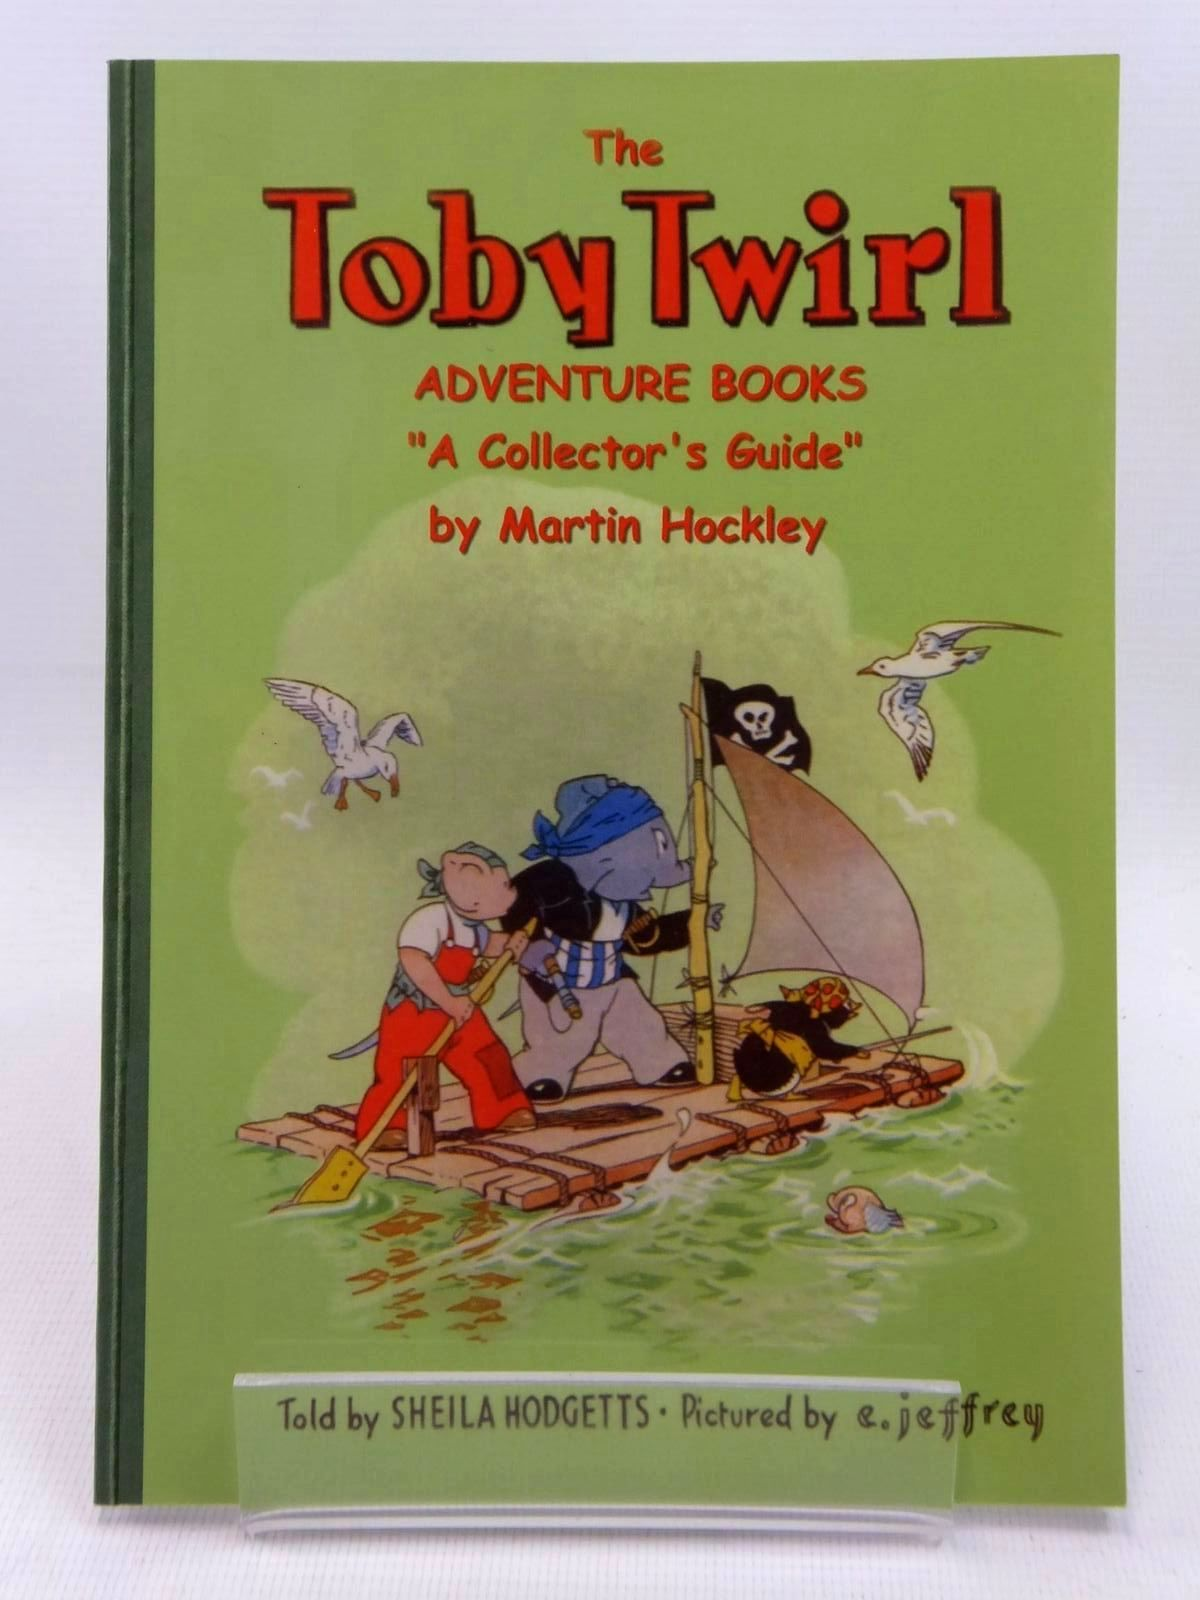 Photo of THE TOBY TWIRL ADVENTURE BOOKS A COLLECTOR'S GUIDE written by Hockley, Martin illustrated by Jeffrey, E. published by Toby Twirl Ltd. (STOCK CODE: 1316912)  for sale by Stella & Rose's Books